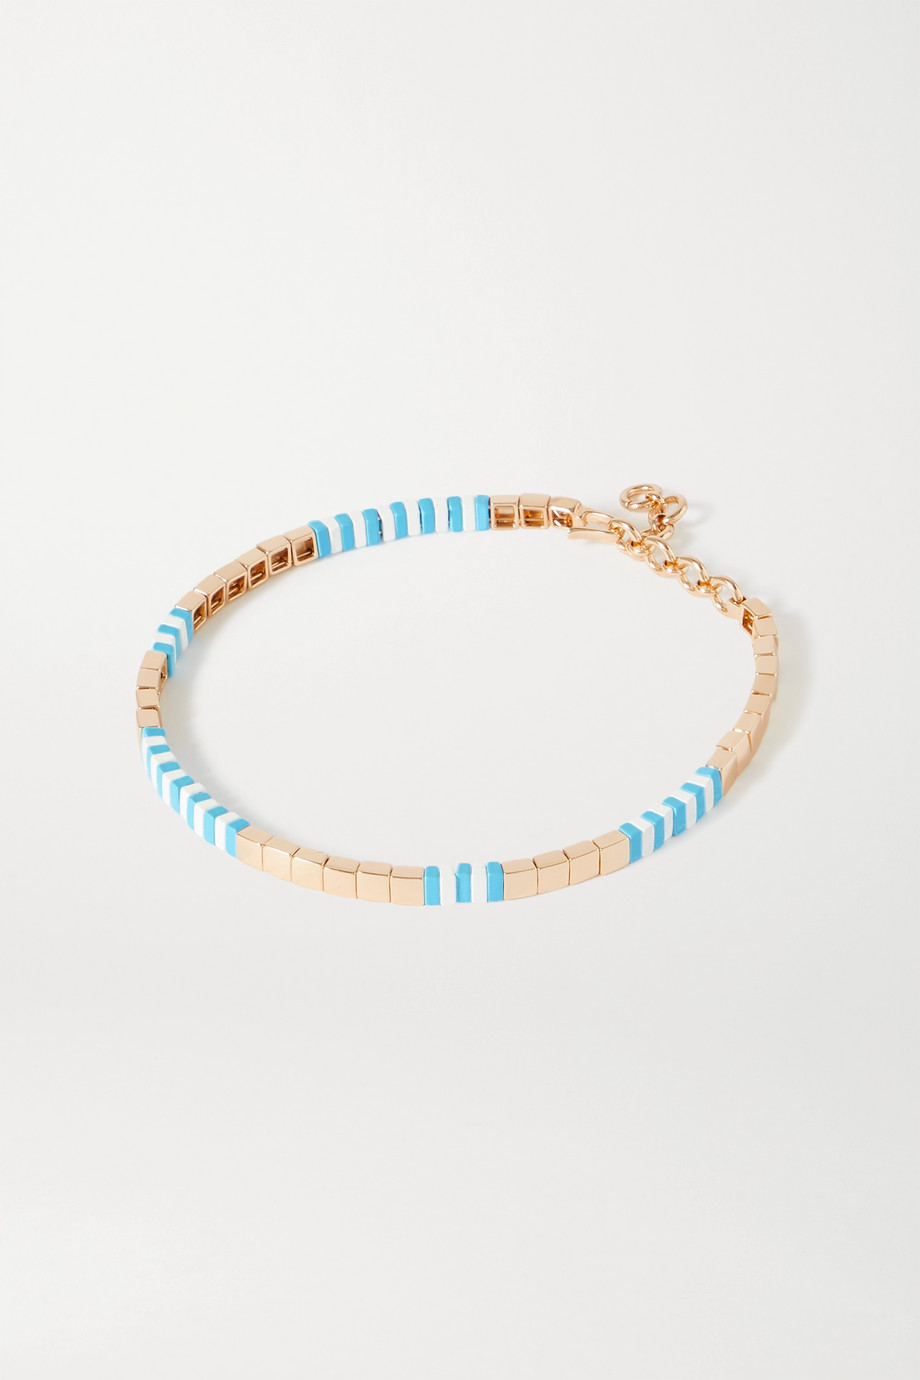 Roxanne Assoulin Pool enamel and gold-tone necklace